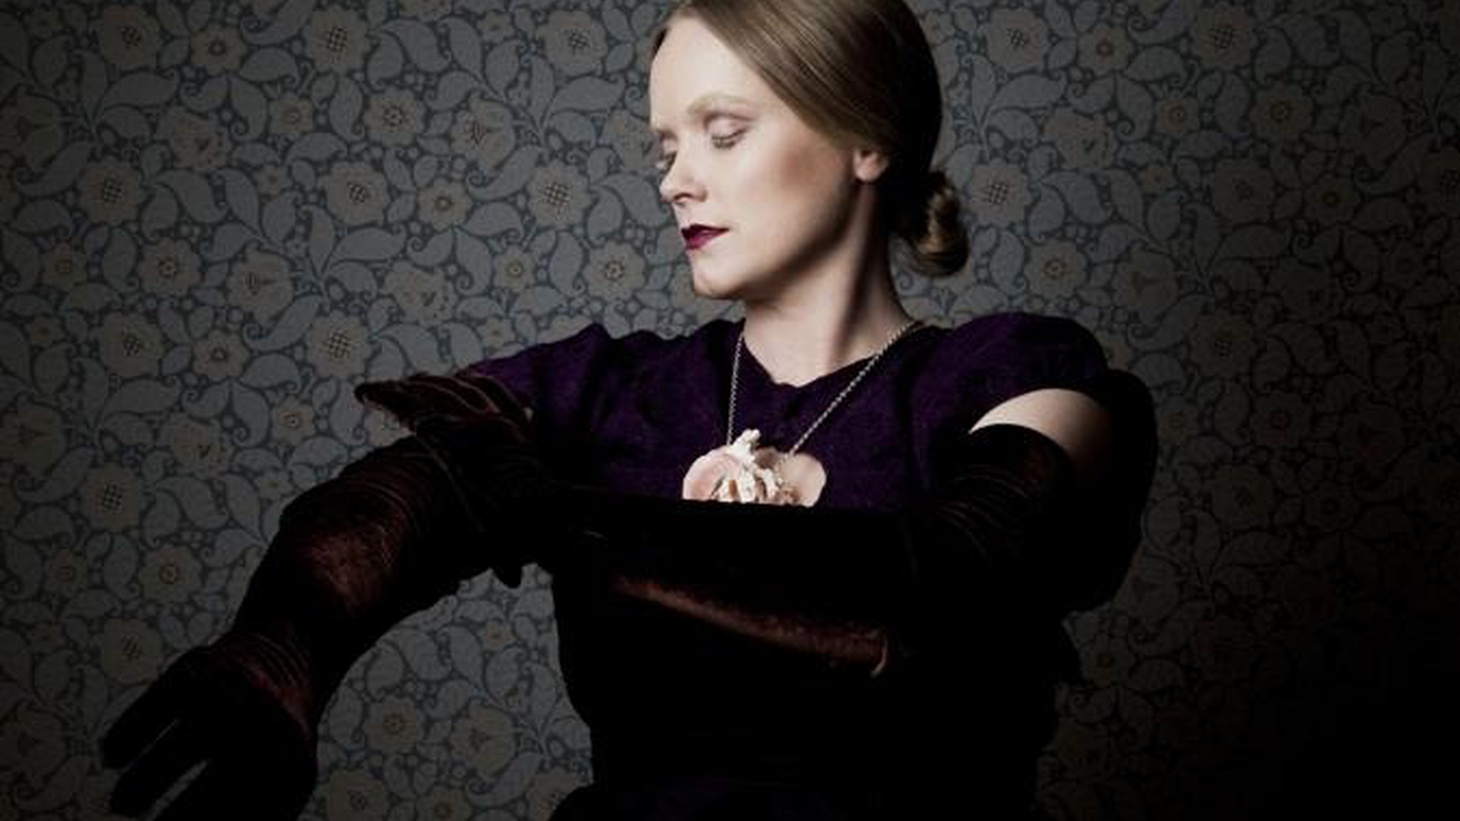 Norwegian singer Ane Brun has a delicate voice and an aura of intrigue. Her new release unites the artist with some of her friends…